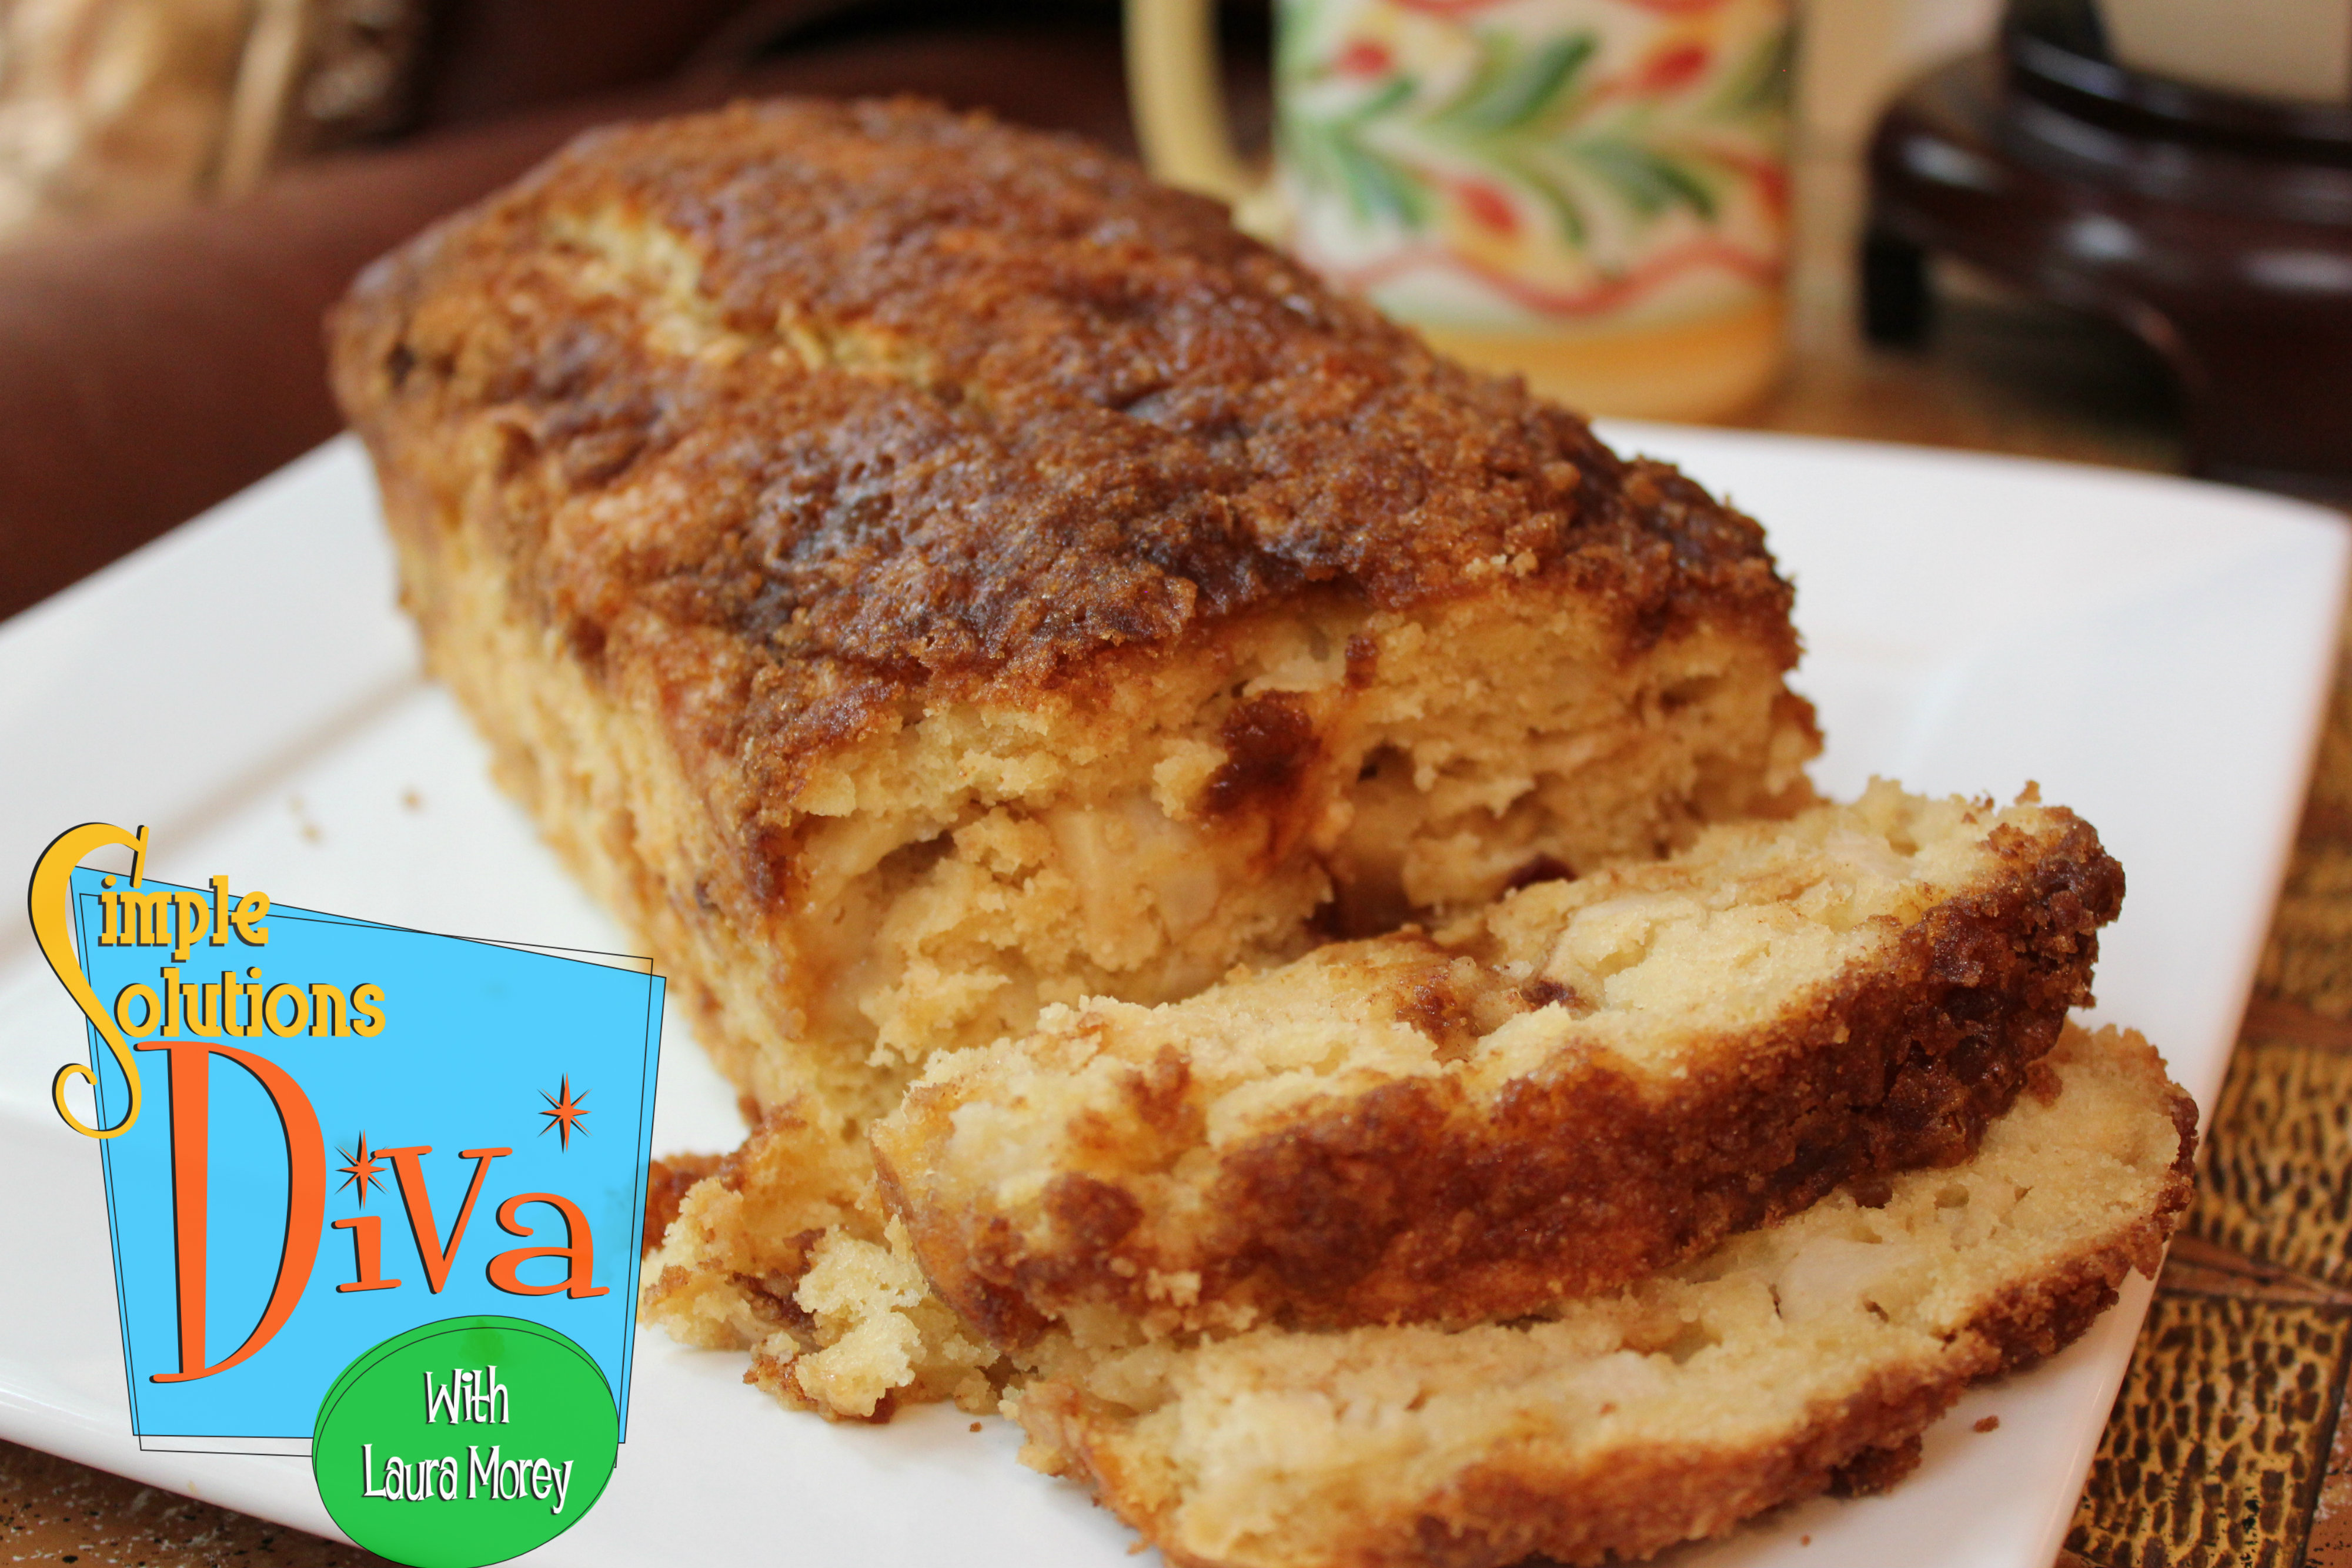 Apple Pie Bread, recipe from SpendWithPennies.com; Photo Credit: Simple Solutions Diva.